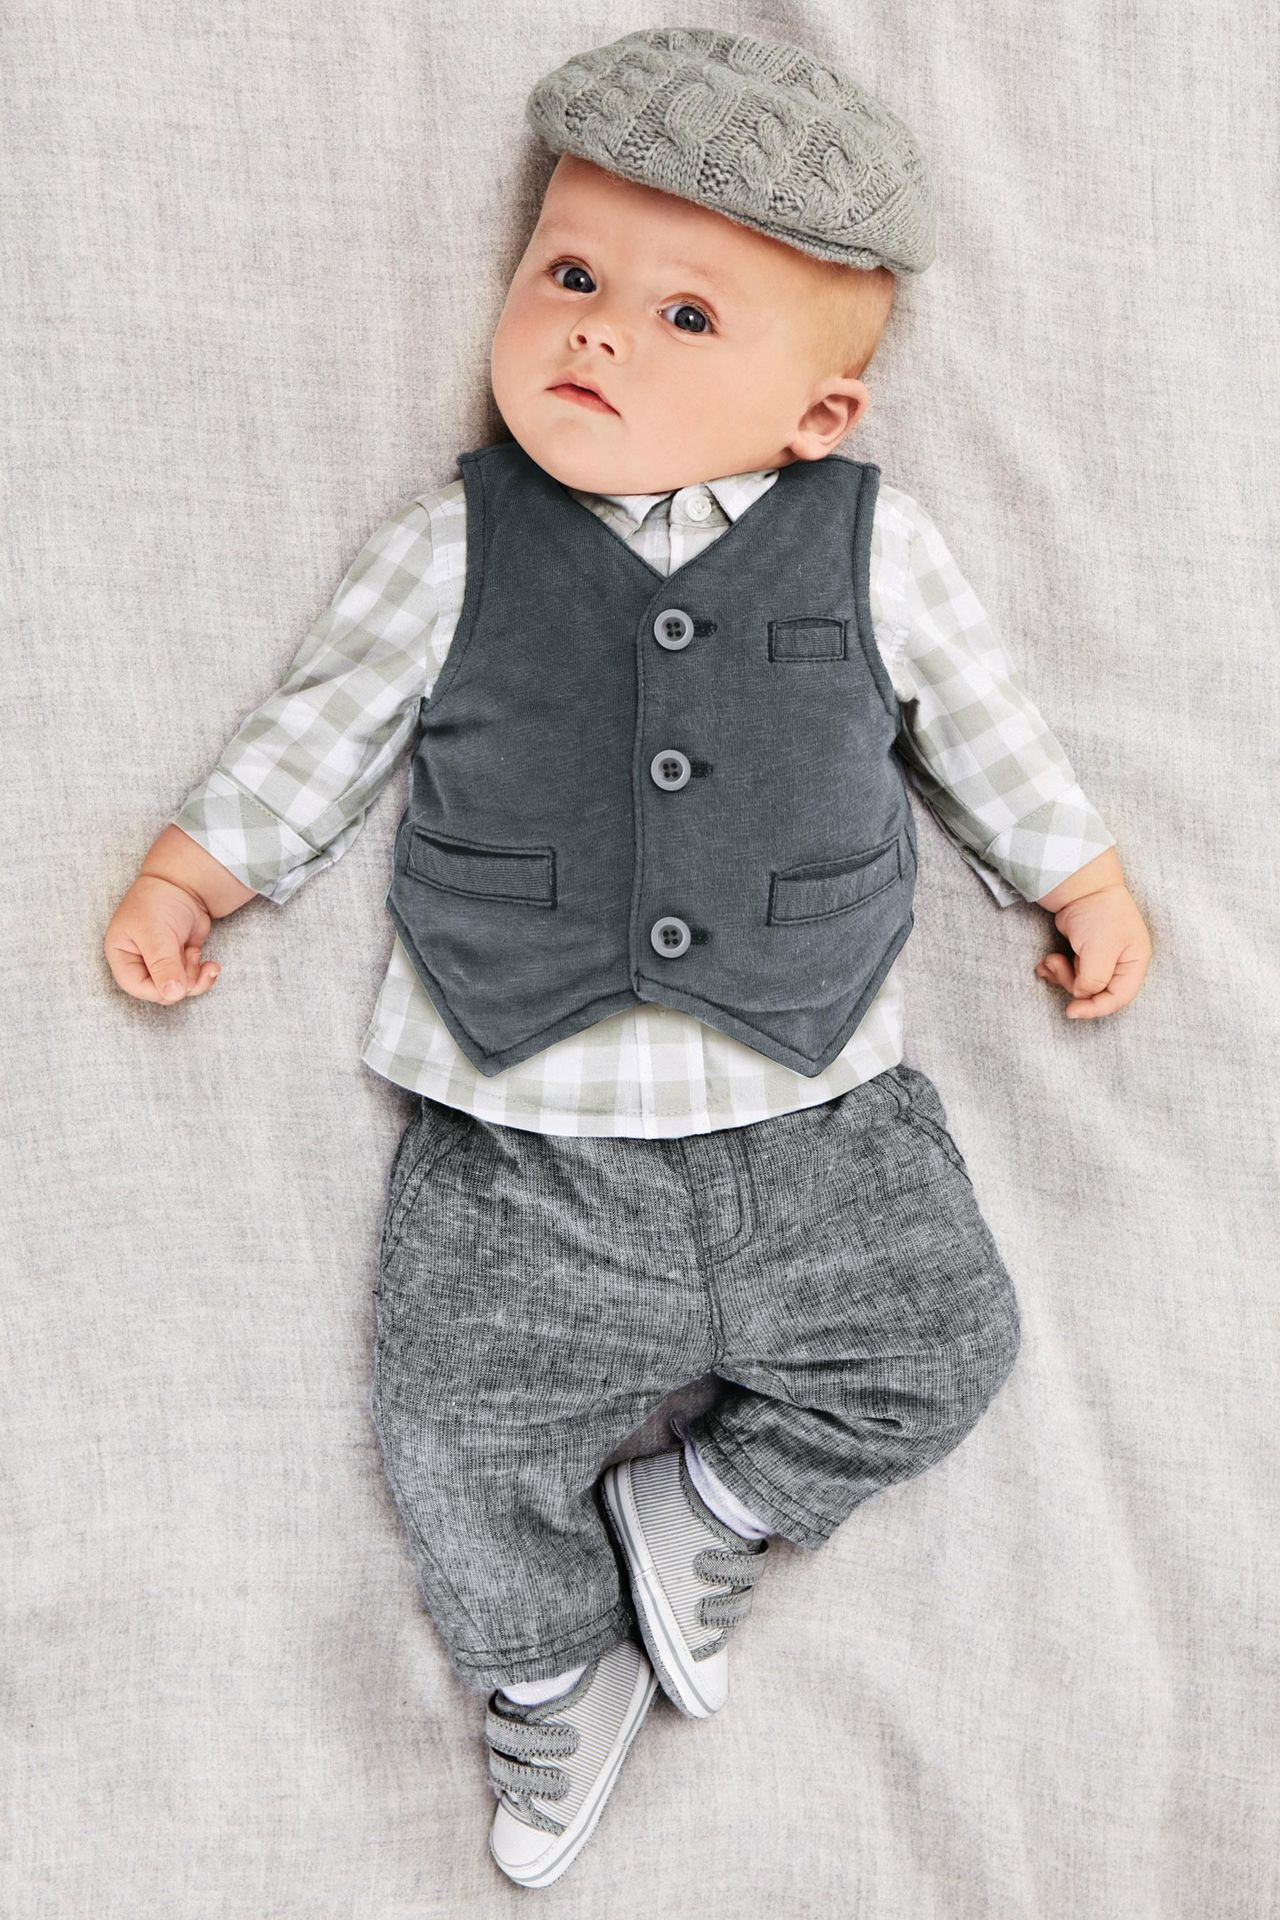 Where To Get Cute Baby Boy Clothes Newest and Cutest Baby Clothing